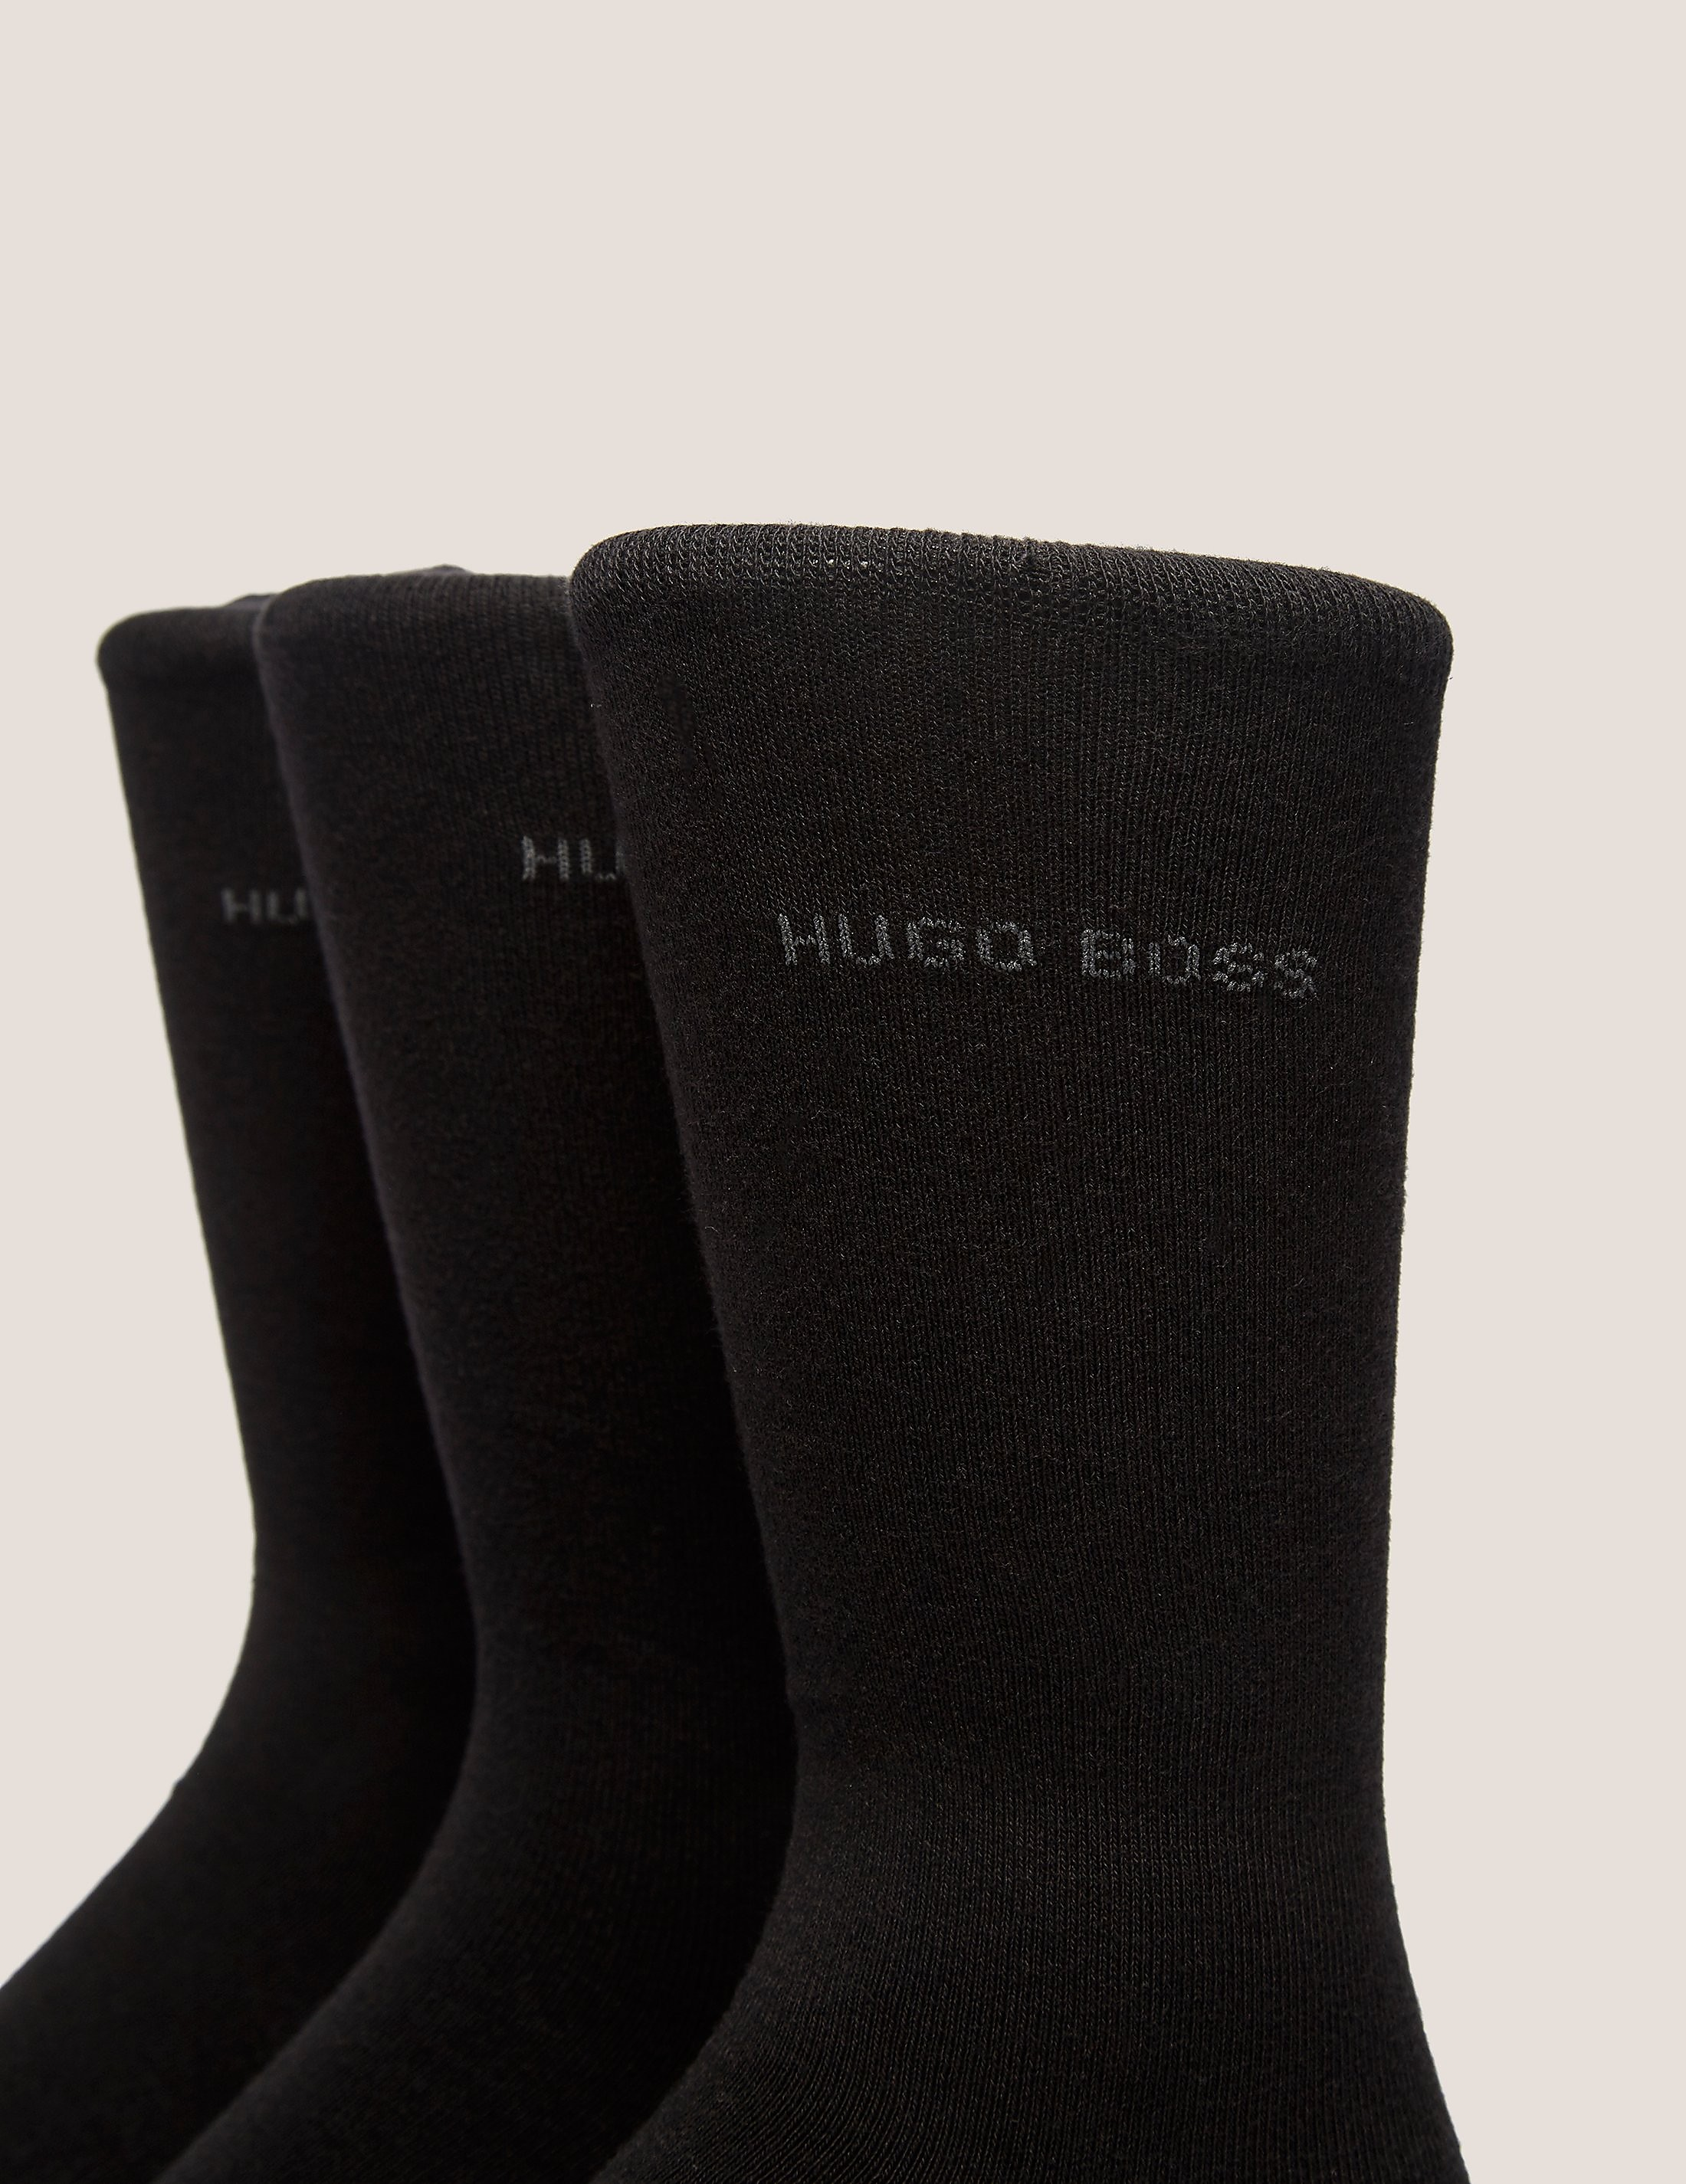 BOSS 3 Pack Socks